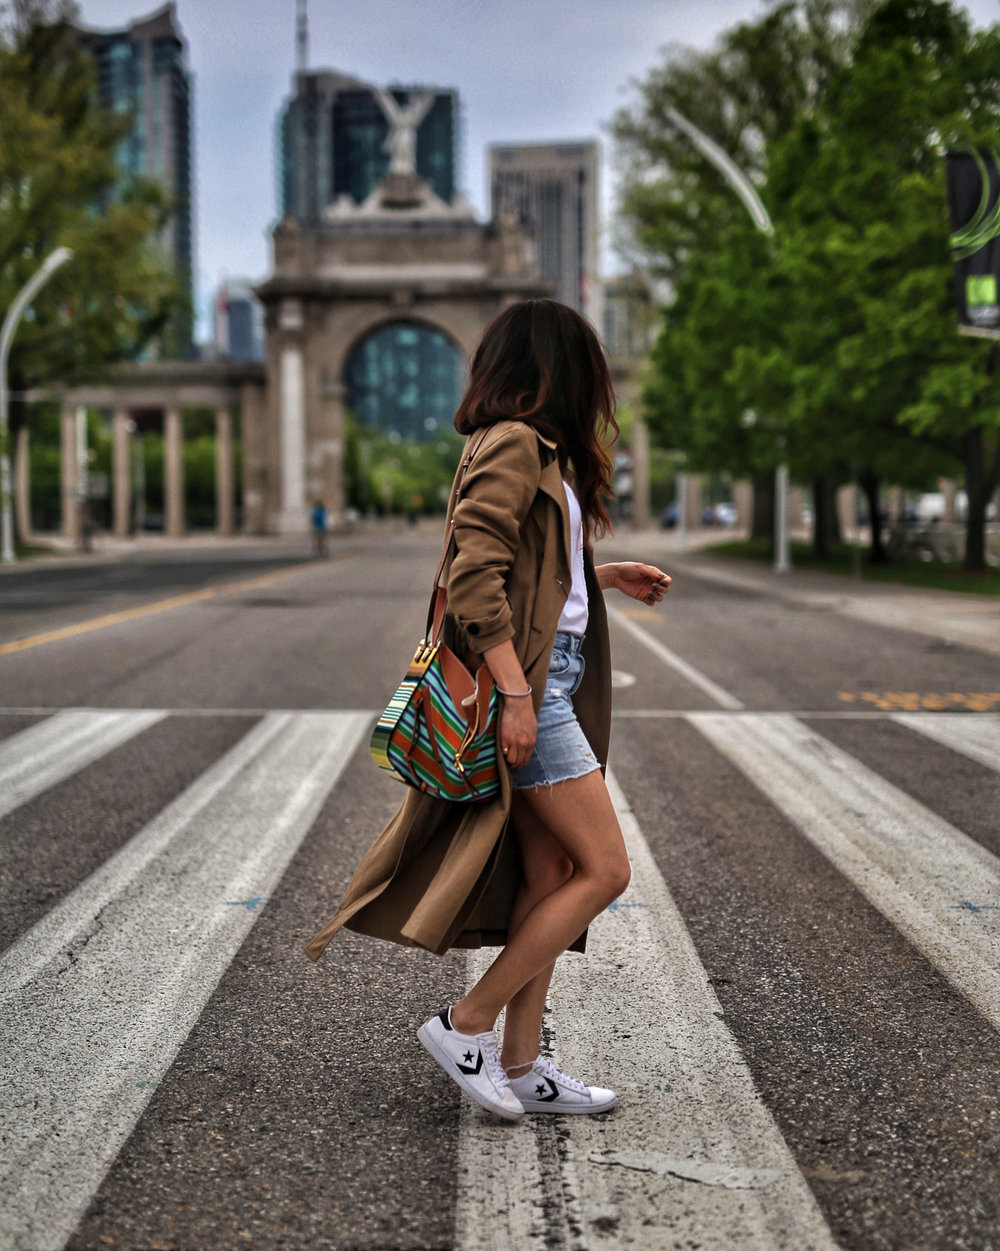 woahstyle.com 2018 - zara linen trench coat, free people cut off shorts, converse one stars, loewe striped small hammock bag, white button up shirt - toronto street style - hotel x - nathalie martin 9.jpg